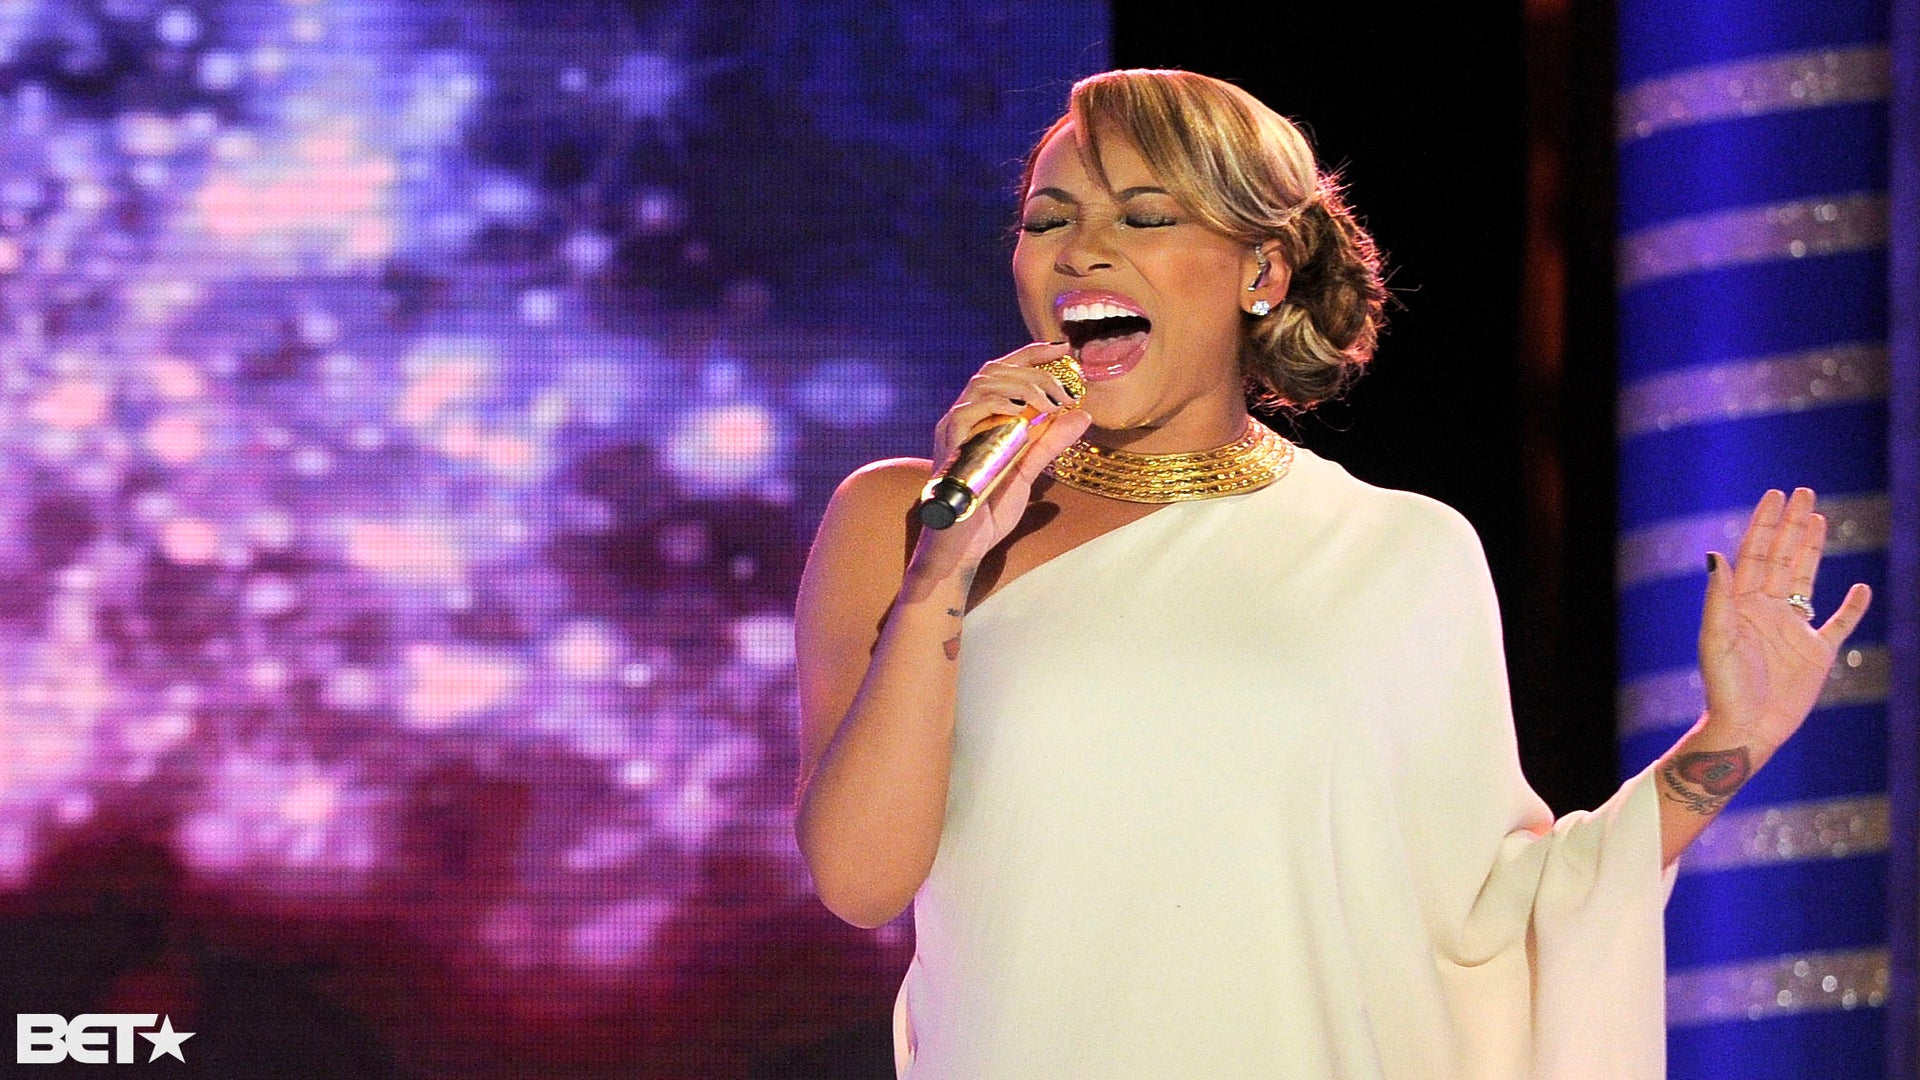 Celebs Celebrate Christmas with BET Special